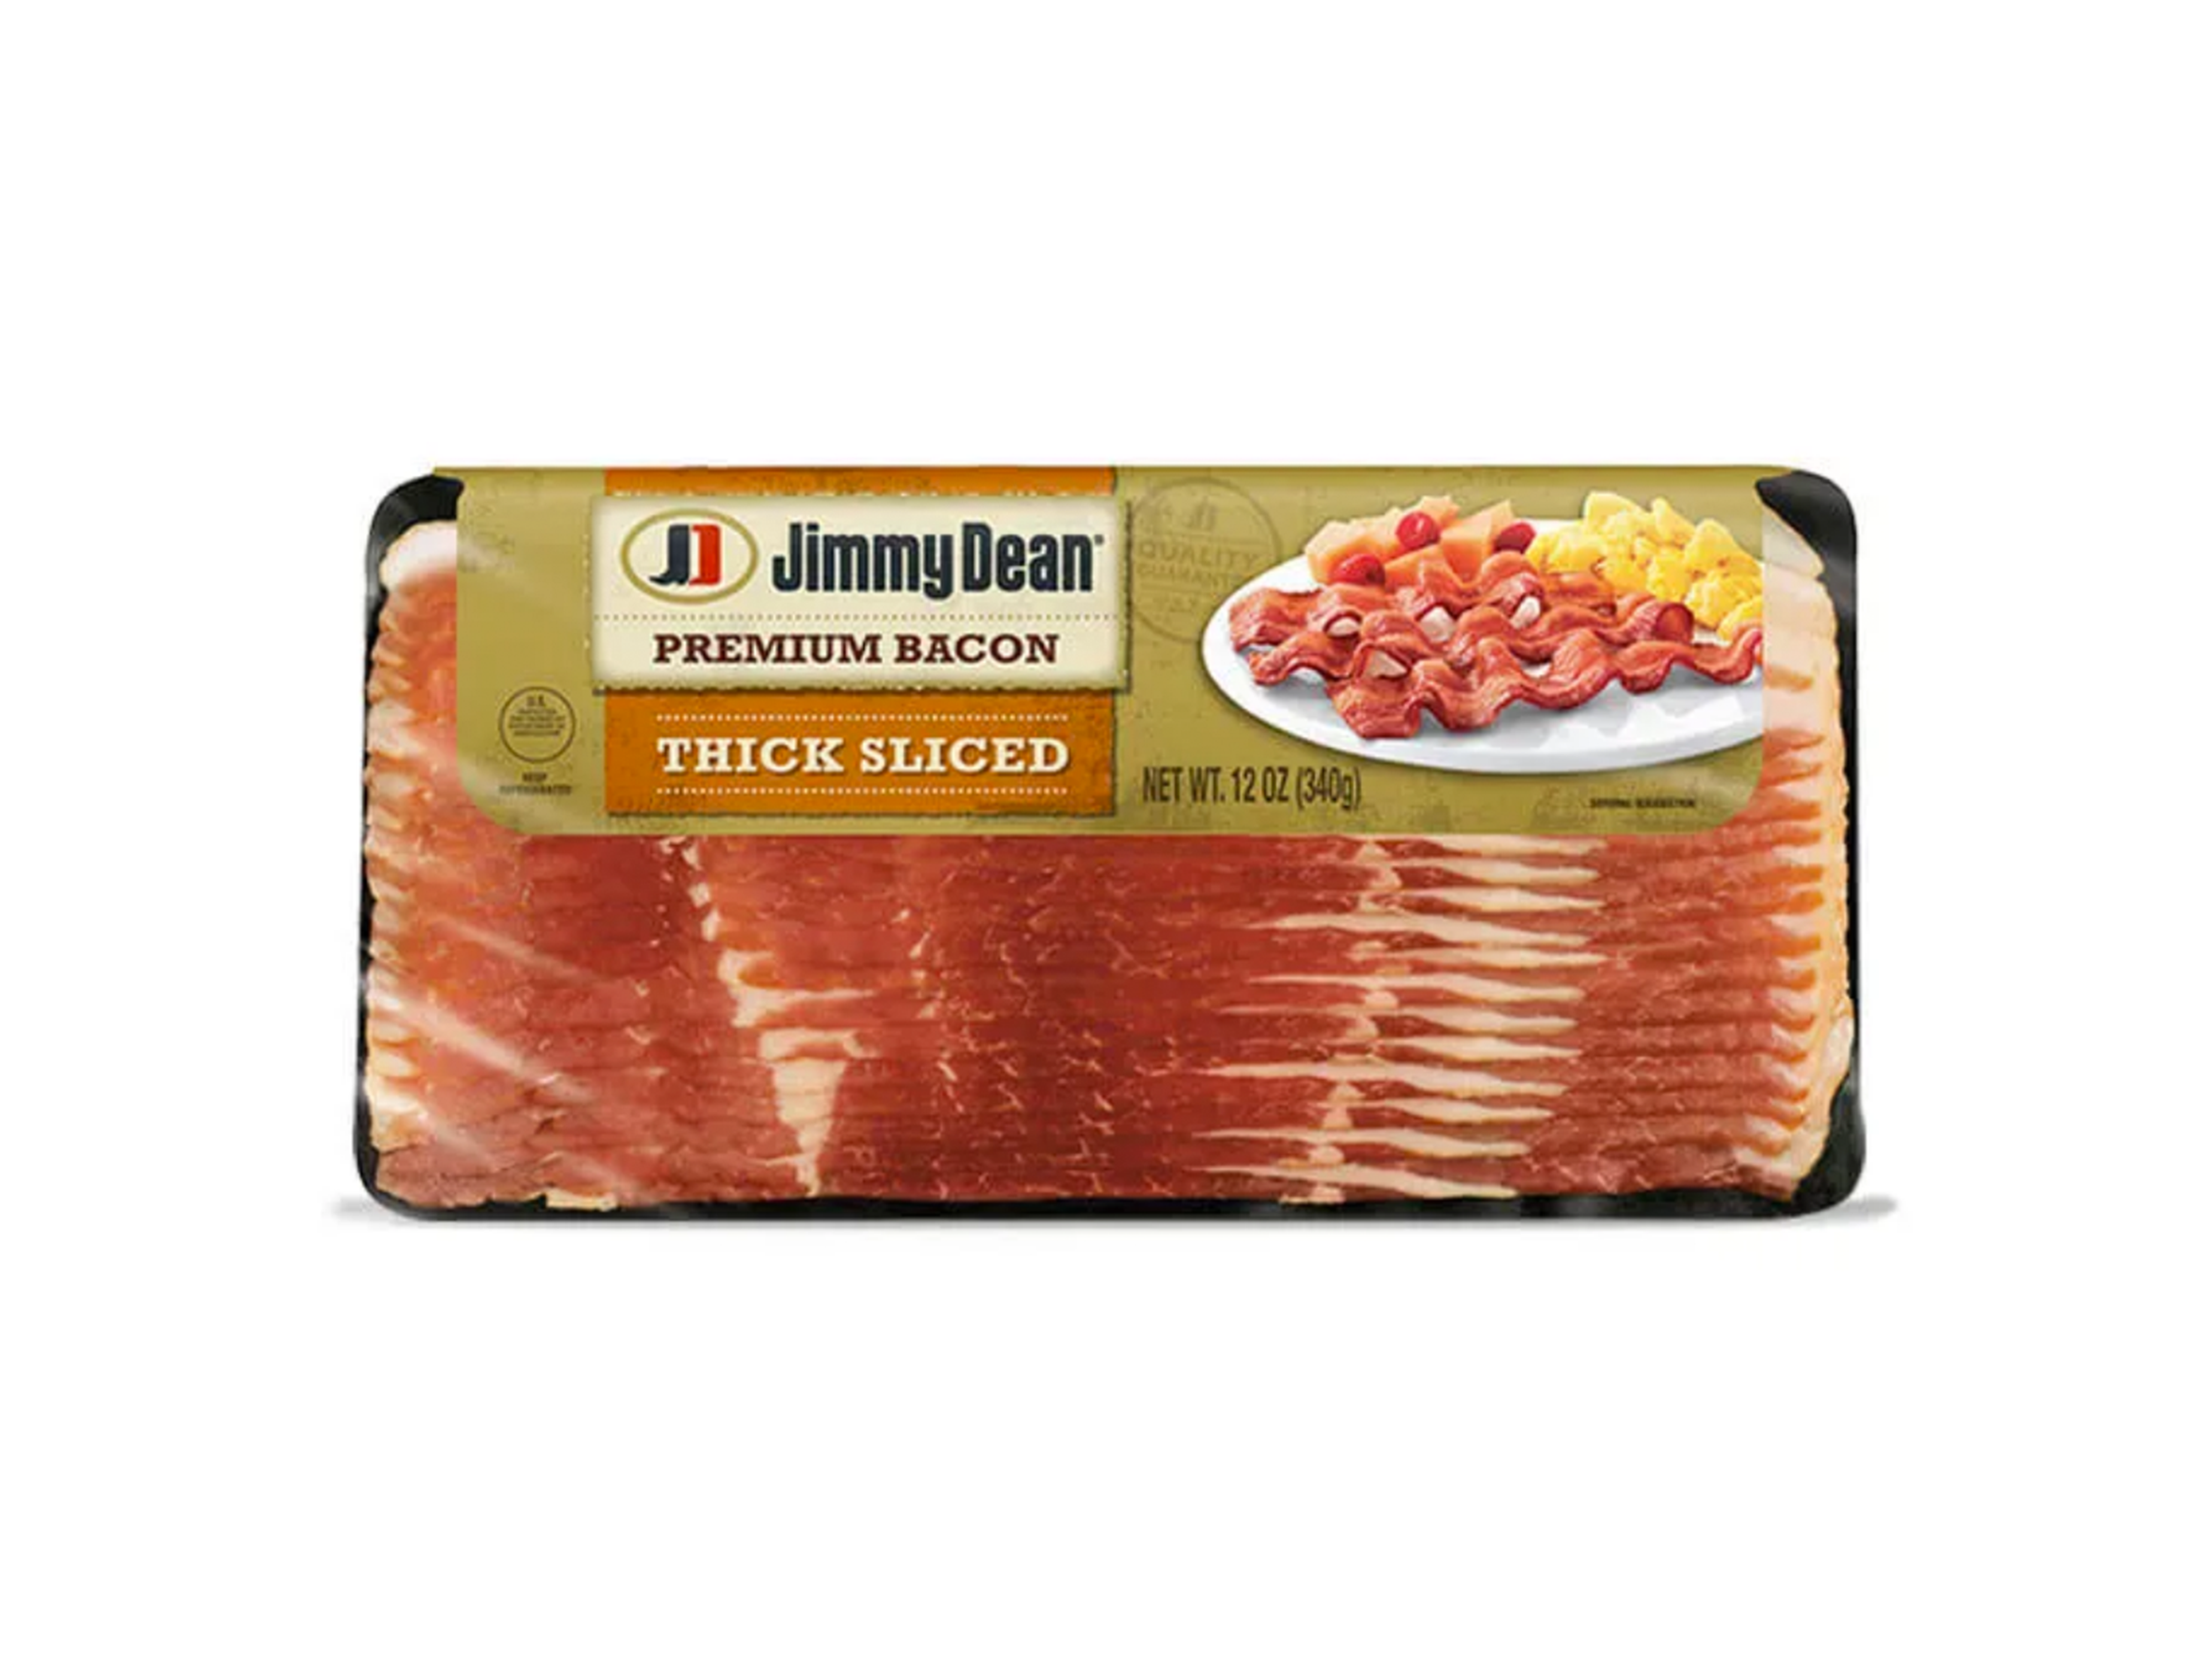 jimmy dean thick sliced bacon